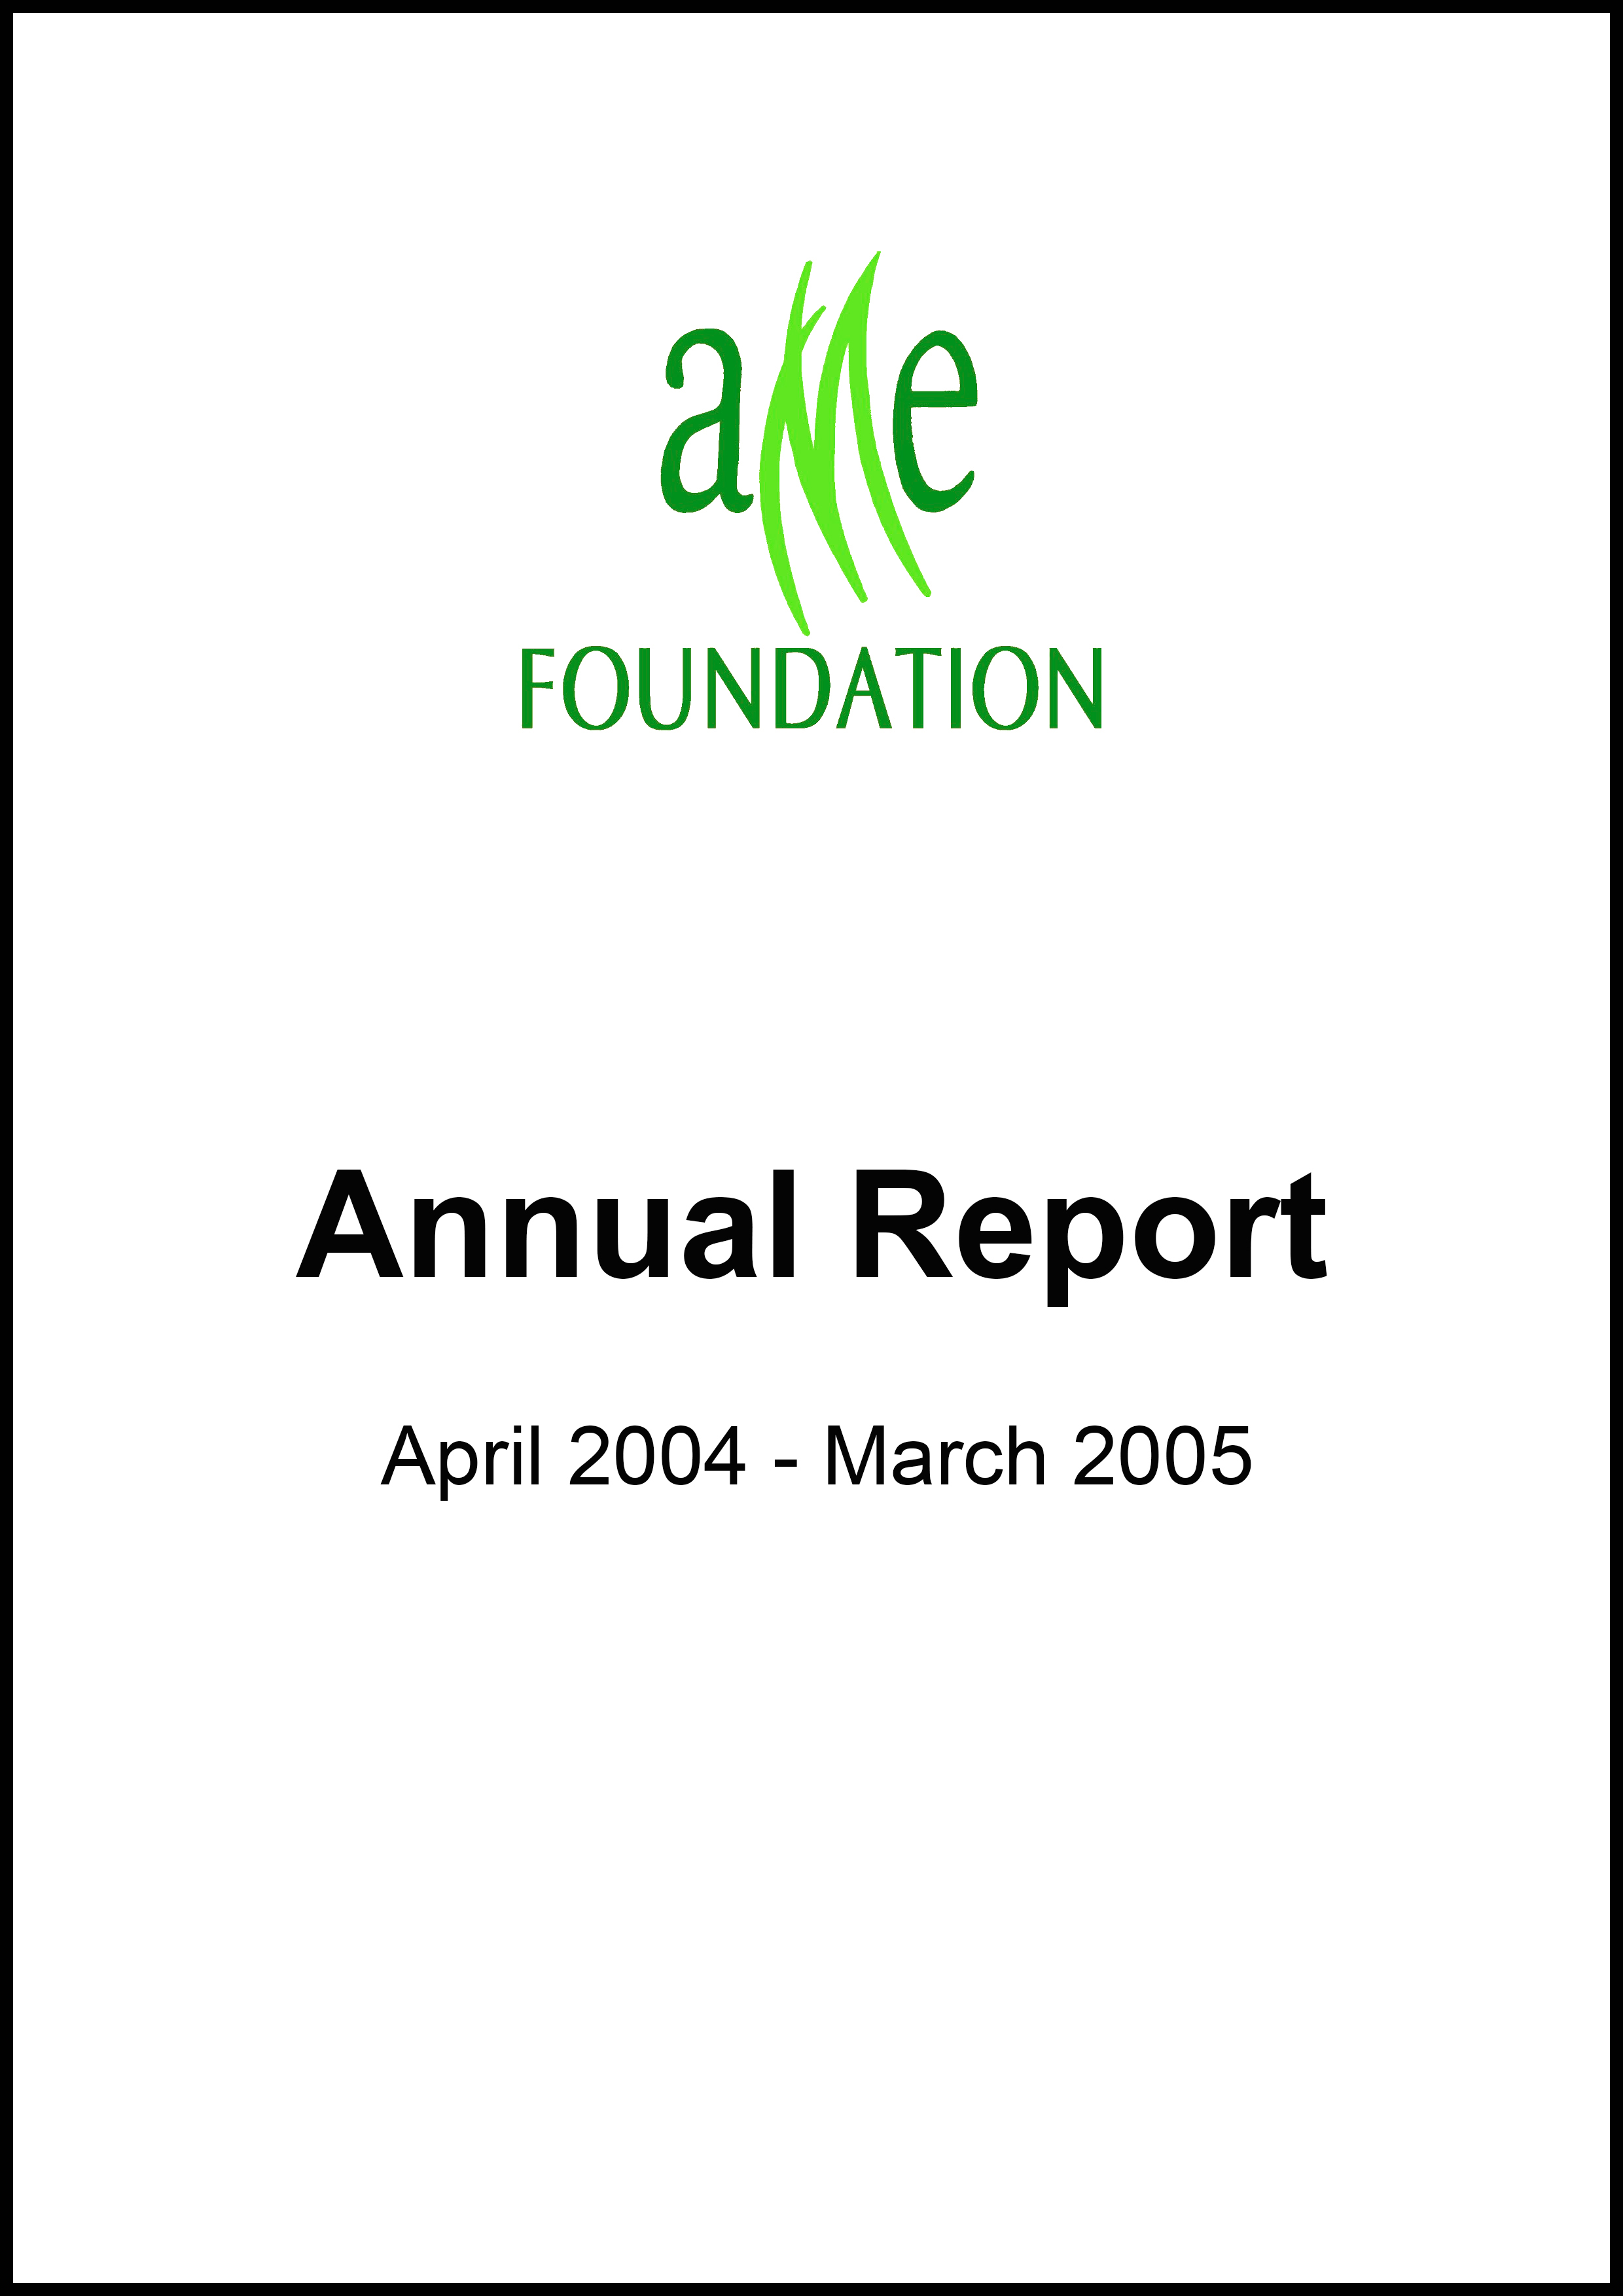 AME Annual Report Thumbnail